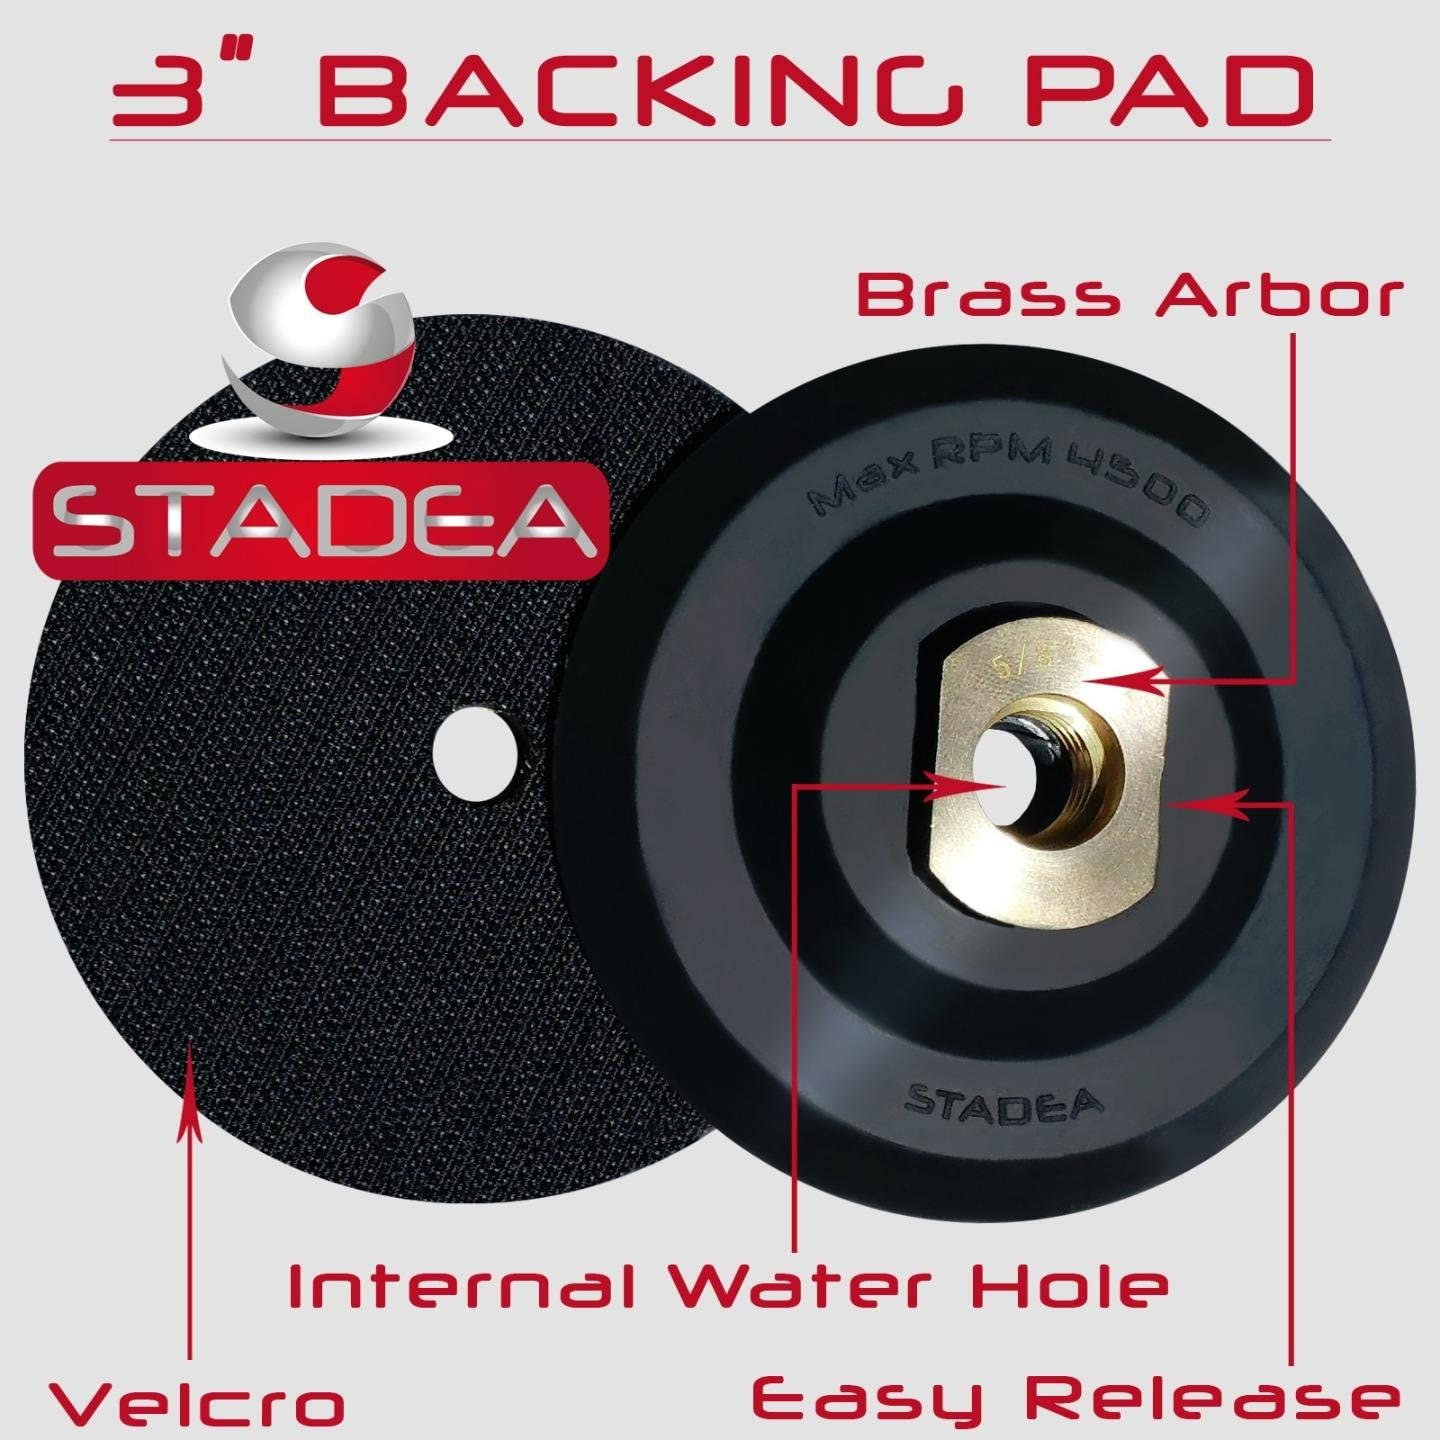 5 hook and loop backing pad Rubber Backing Pads By STADEA Shop N Save Diamond Tools BRRB05STDR00581P